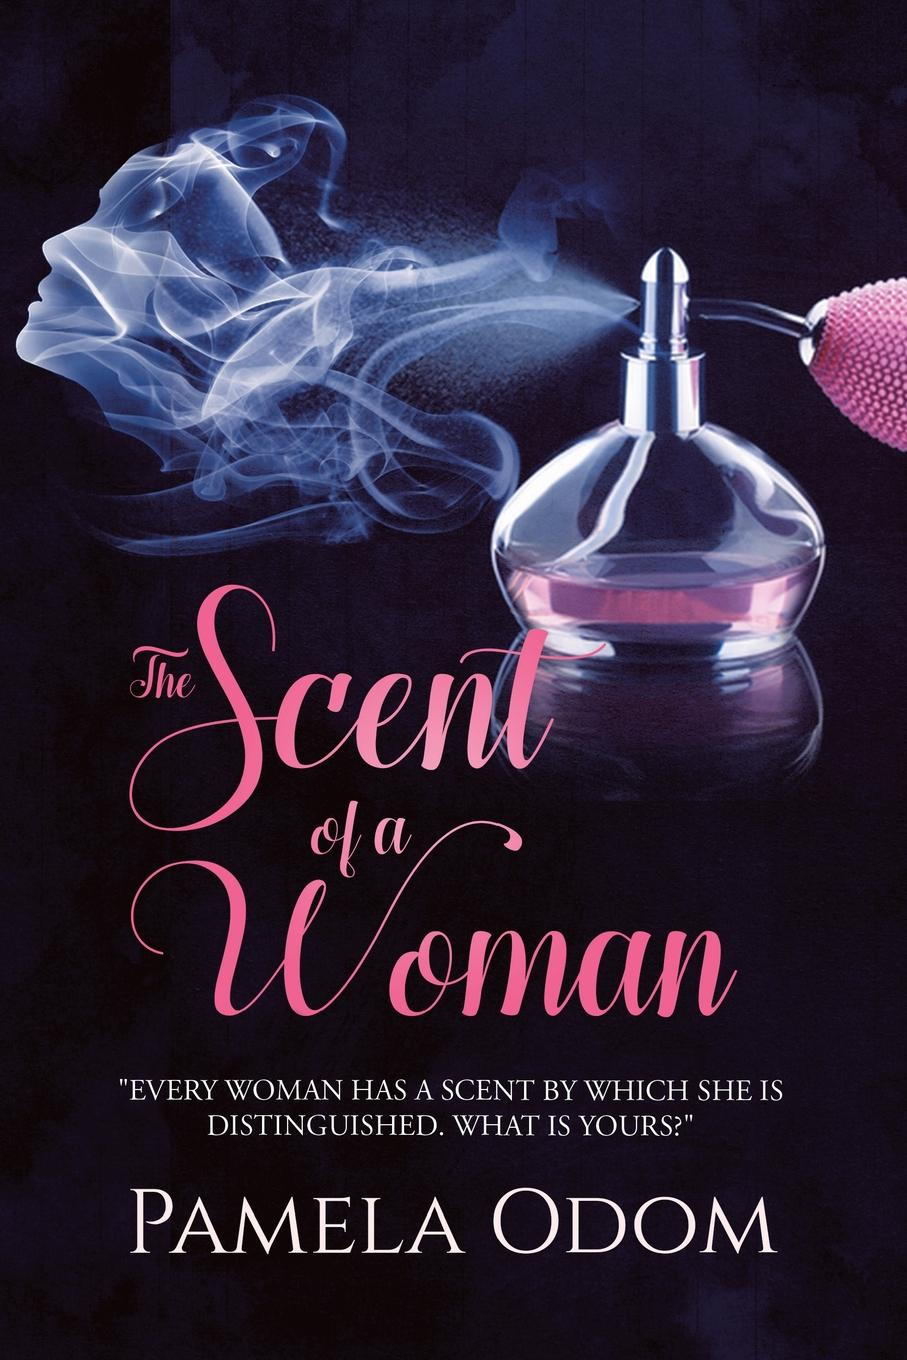 Pamela Odom The Scent of a Woman.